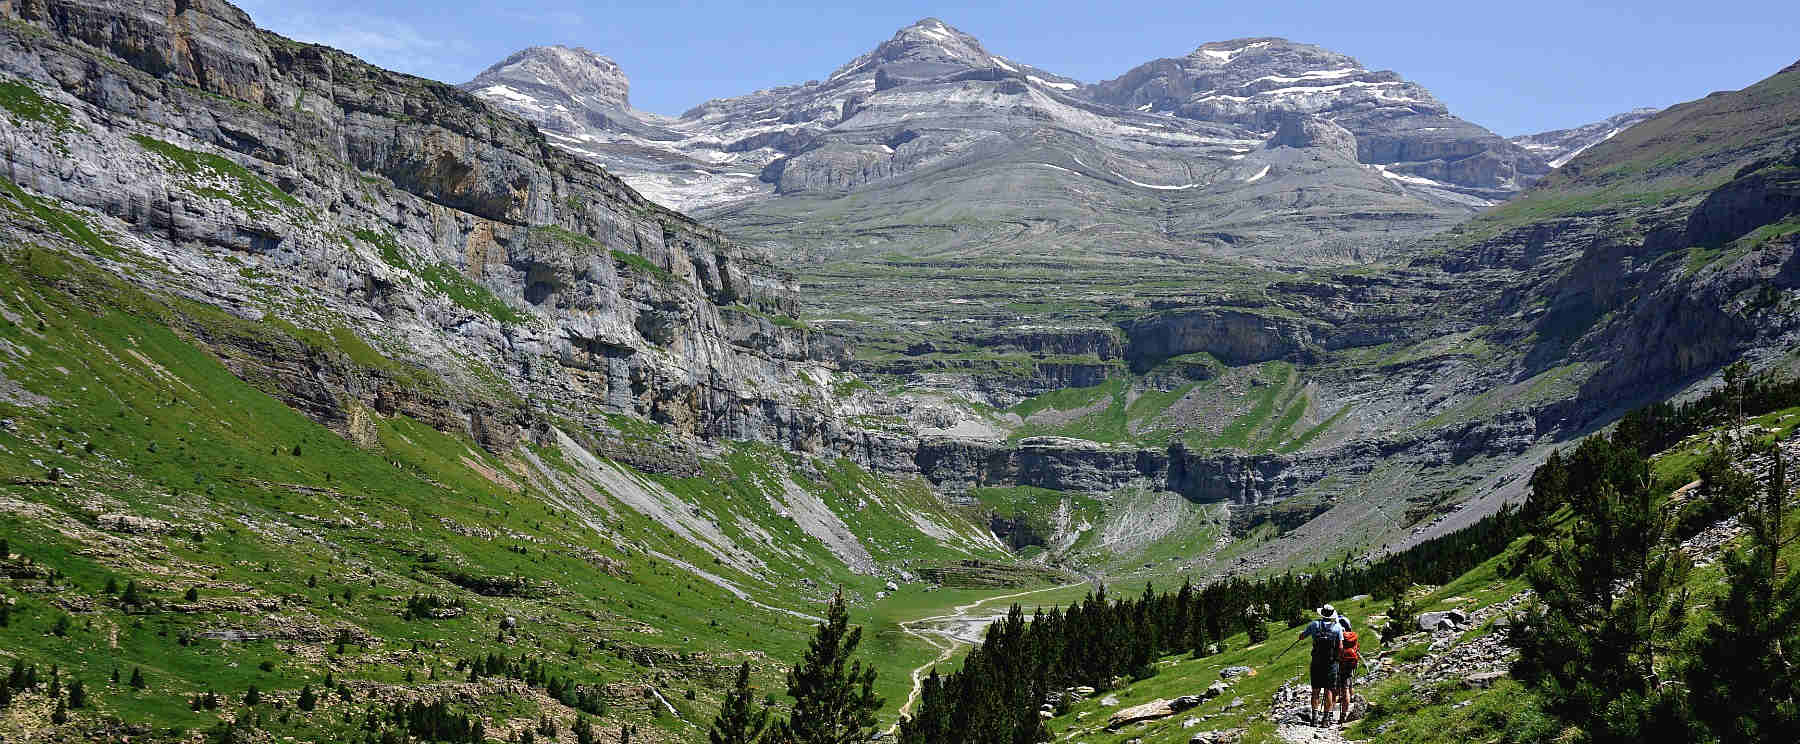 A view of the wide U shaped valley of Ordesa from a high hiking route on Guided Walking Holiday Spain